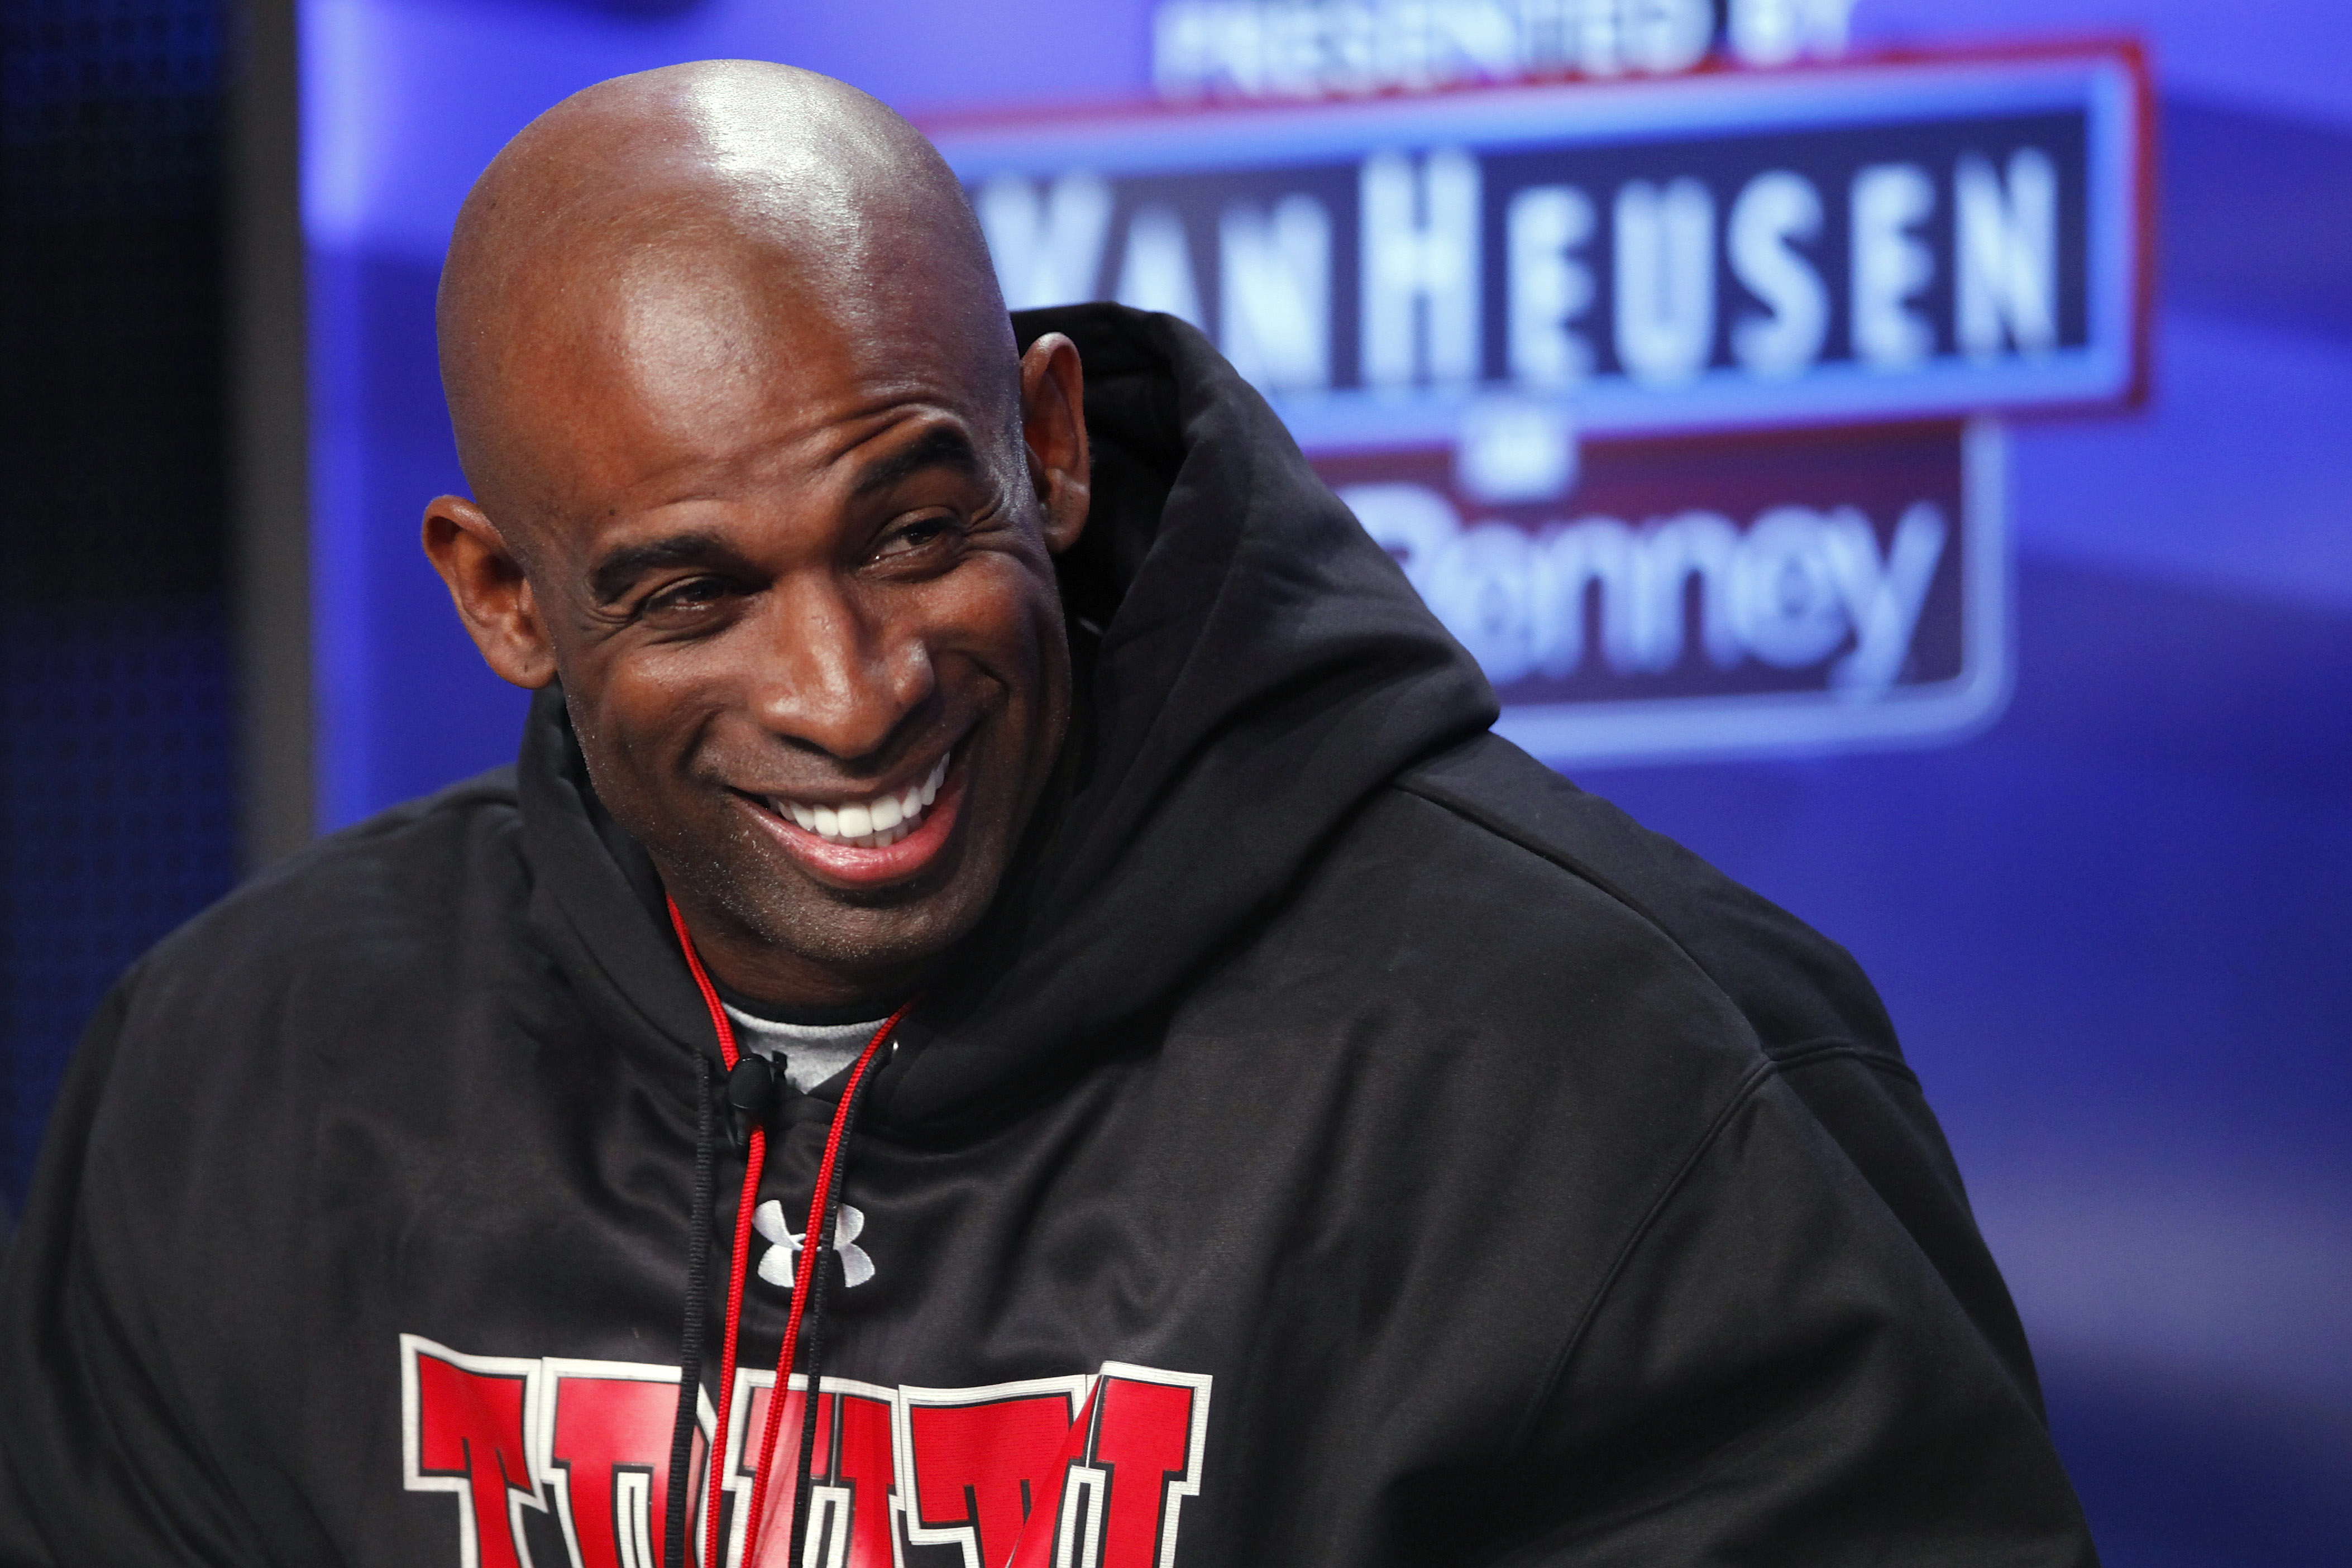 DALLAS, TX - FEBRUARY 5: Deion Sanders looks on after being inducted into the 2011 Pro Football Hall of Fame class during an announcement at the Super Bowl XLV media center on February 5, 2011 in Dallas, Texas. (Photo by Joe Robbins/Getty Images)